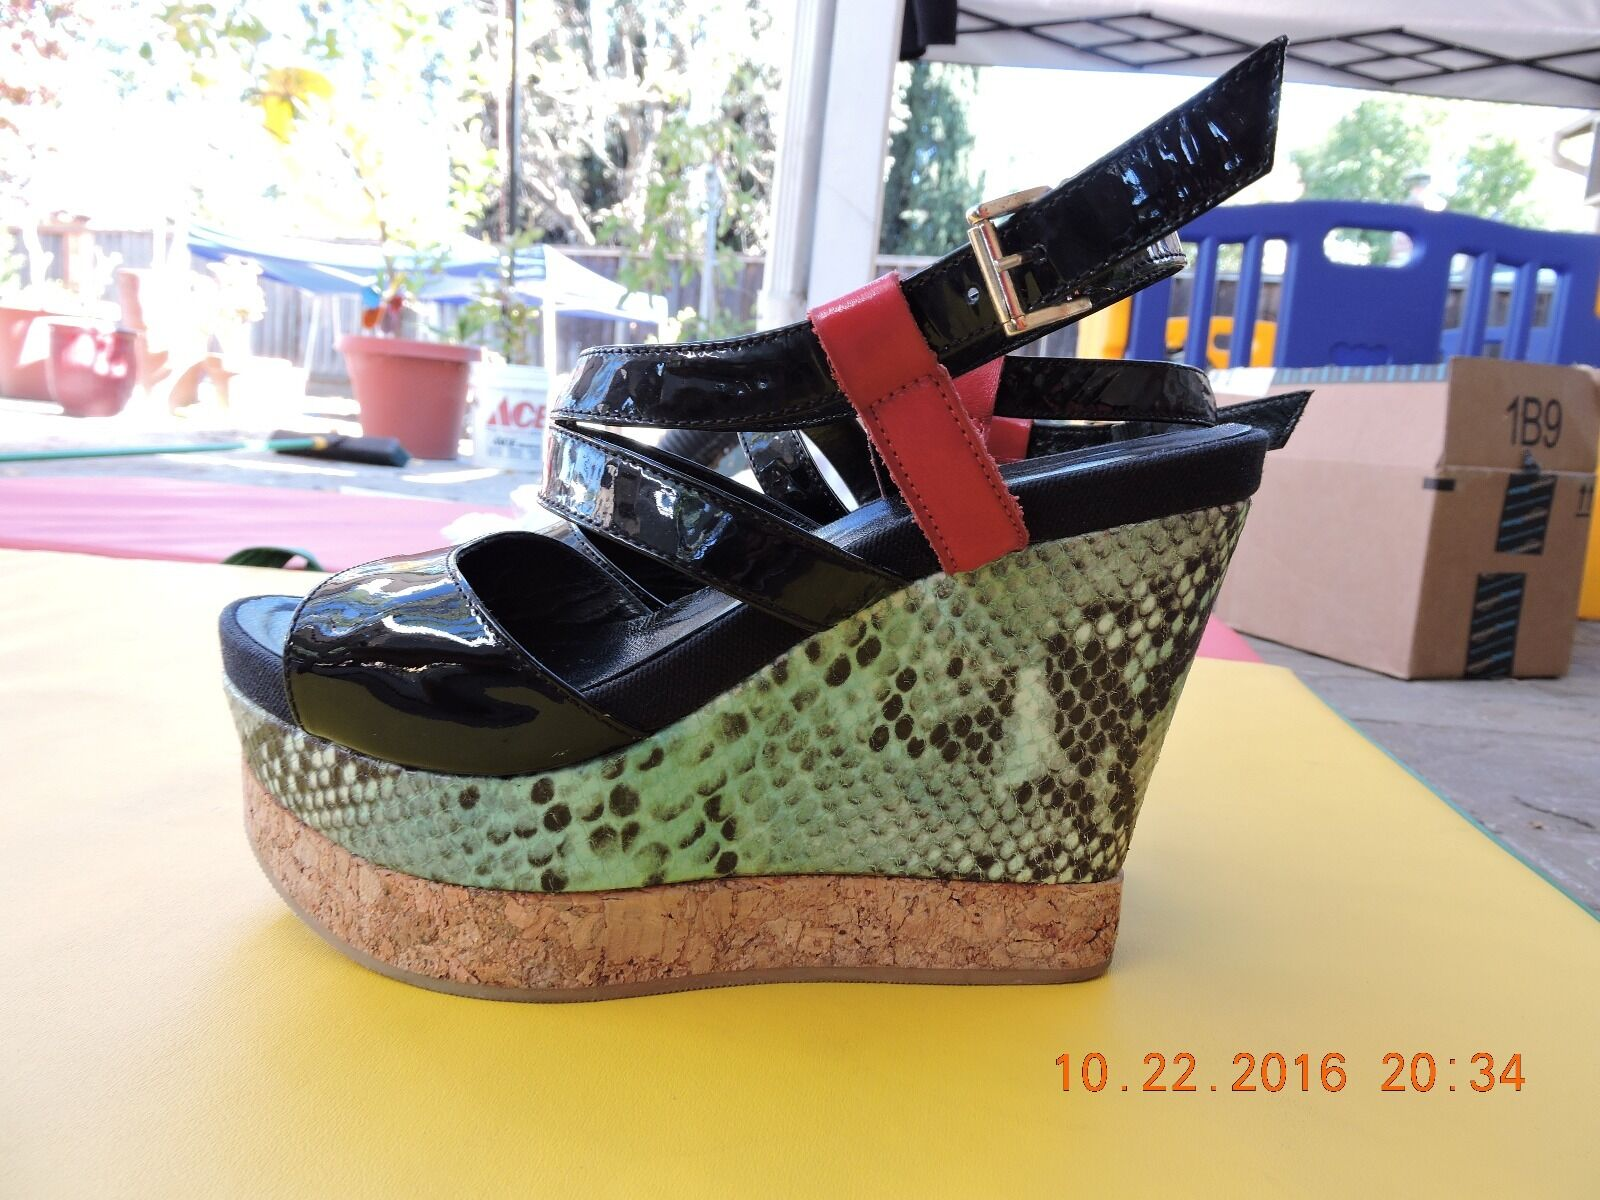 Sandale by Vicini. Größe 6.5. Made in .